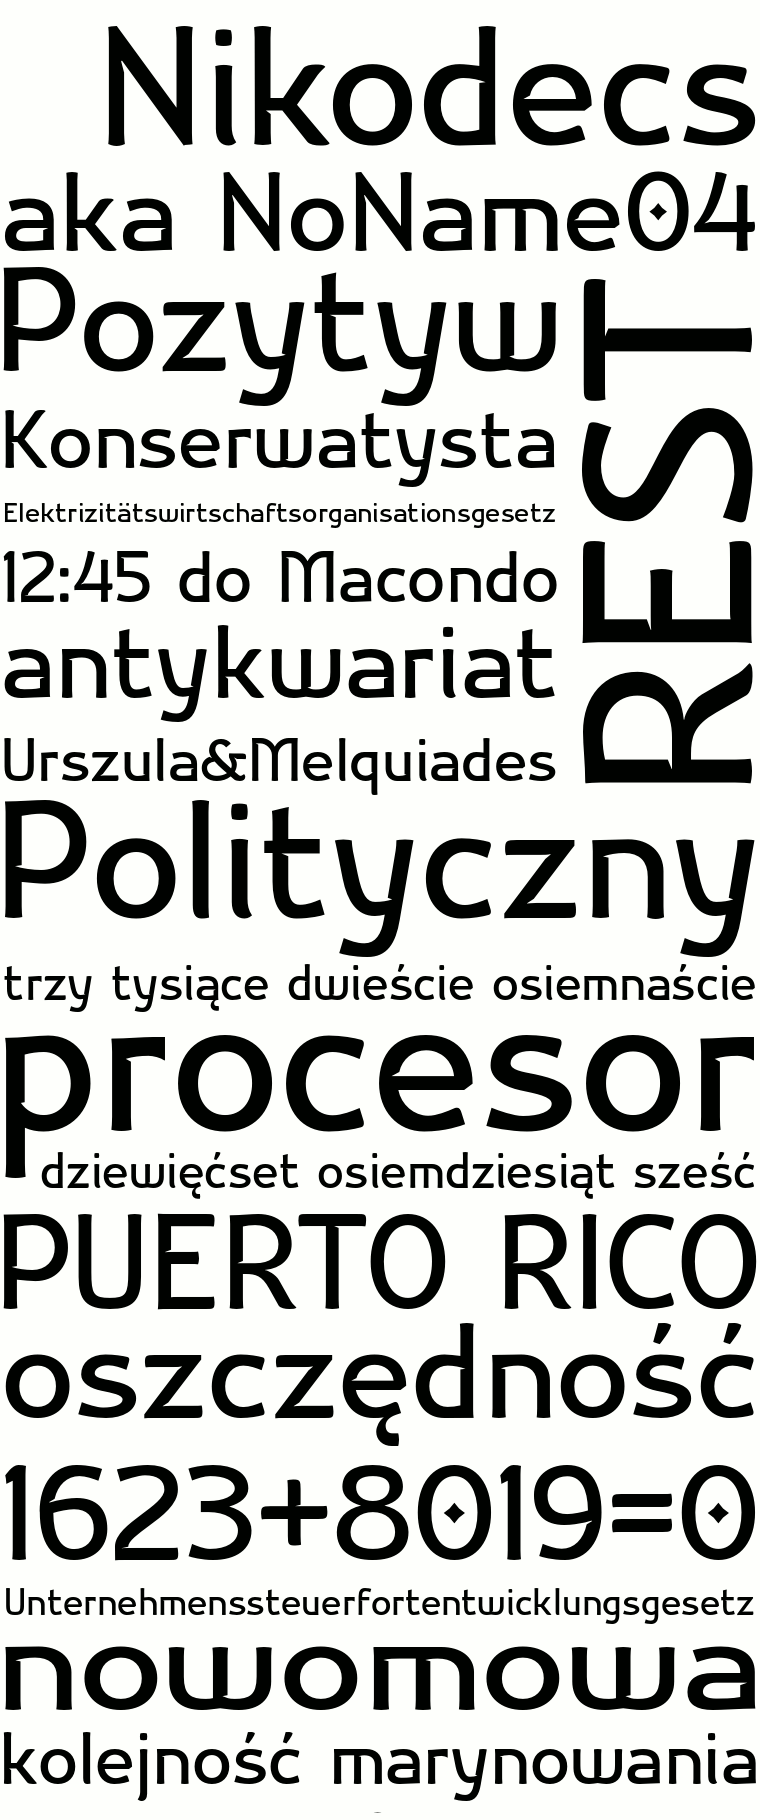 Font Nikodecs made by gluk